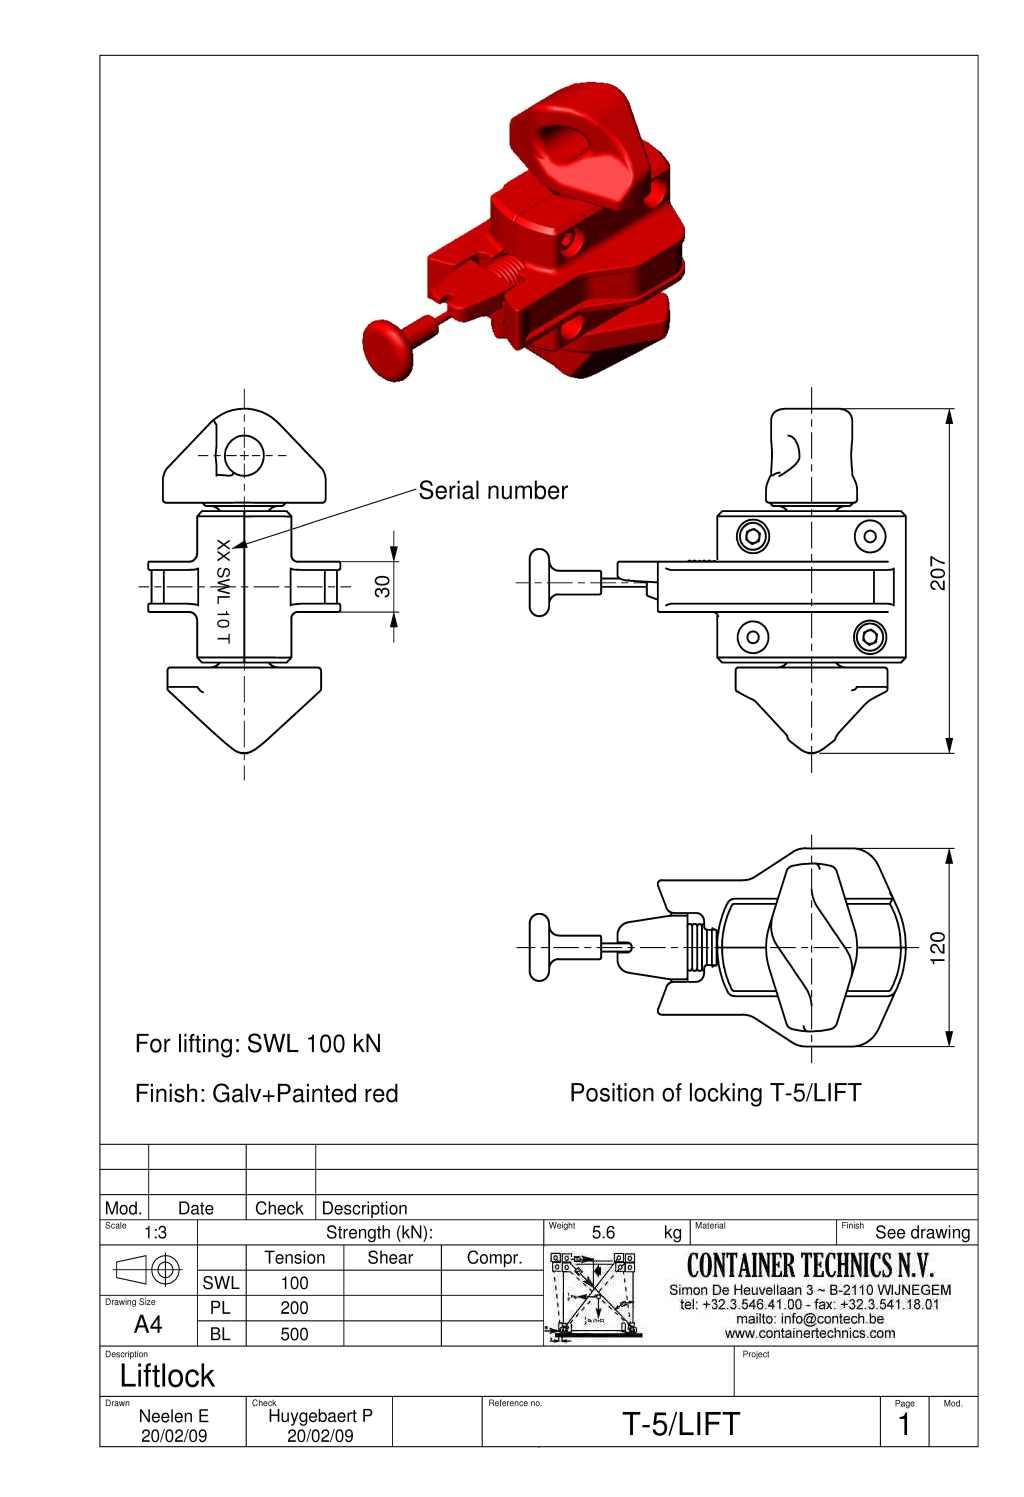 T-5/LIFT SEMIAUTOMATIC LIFTING TWISTLOCK